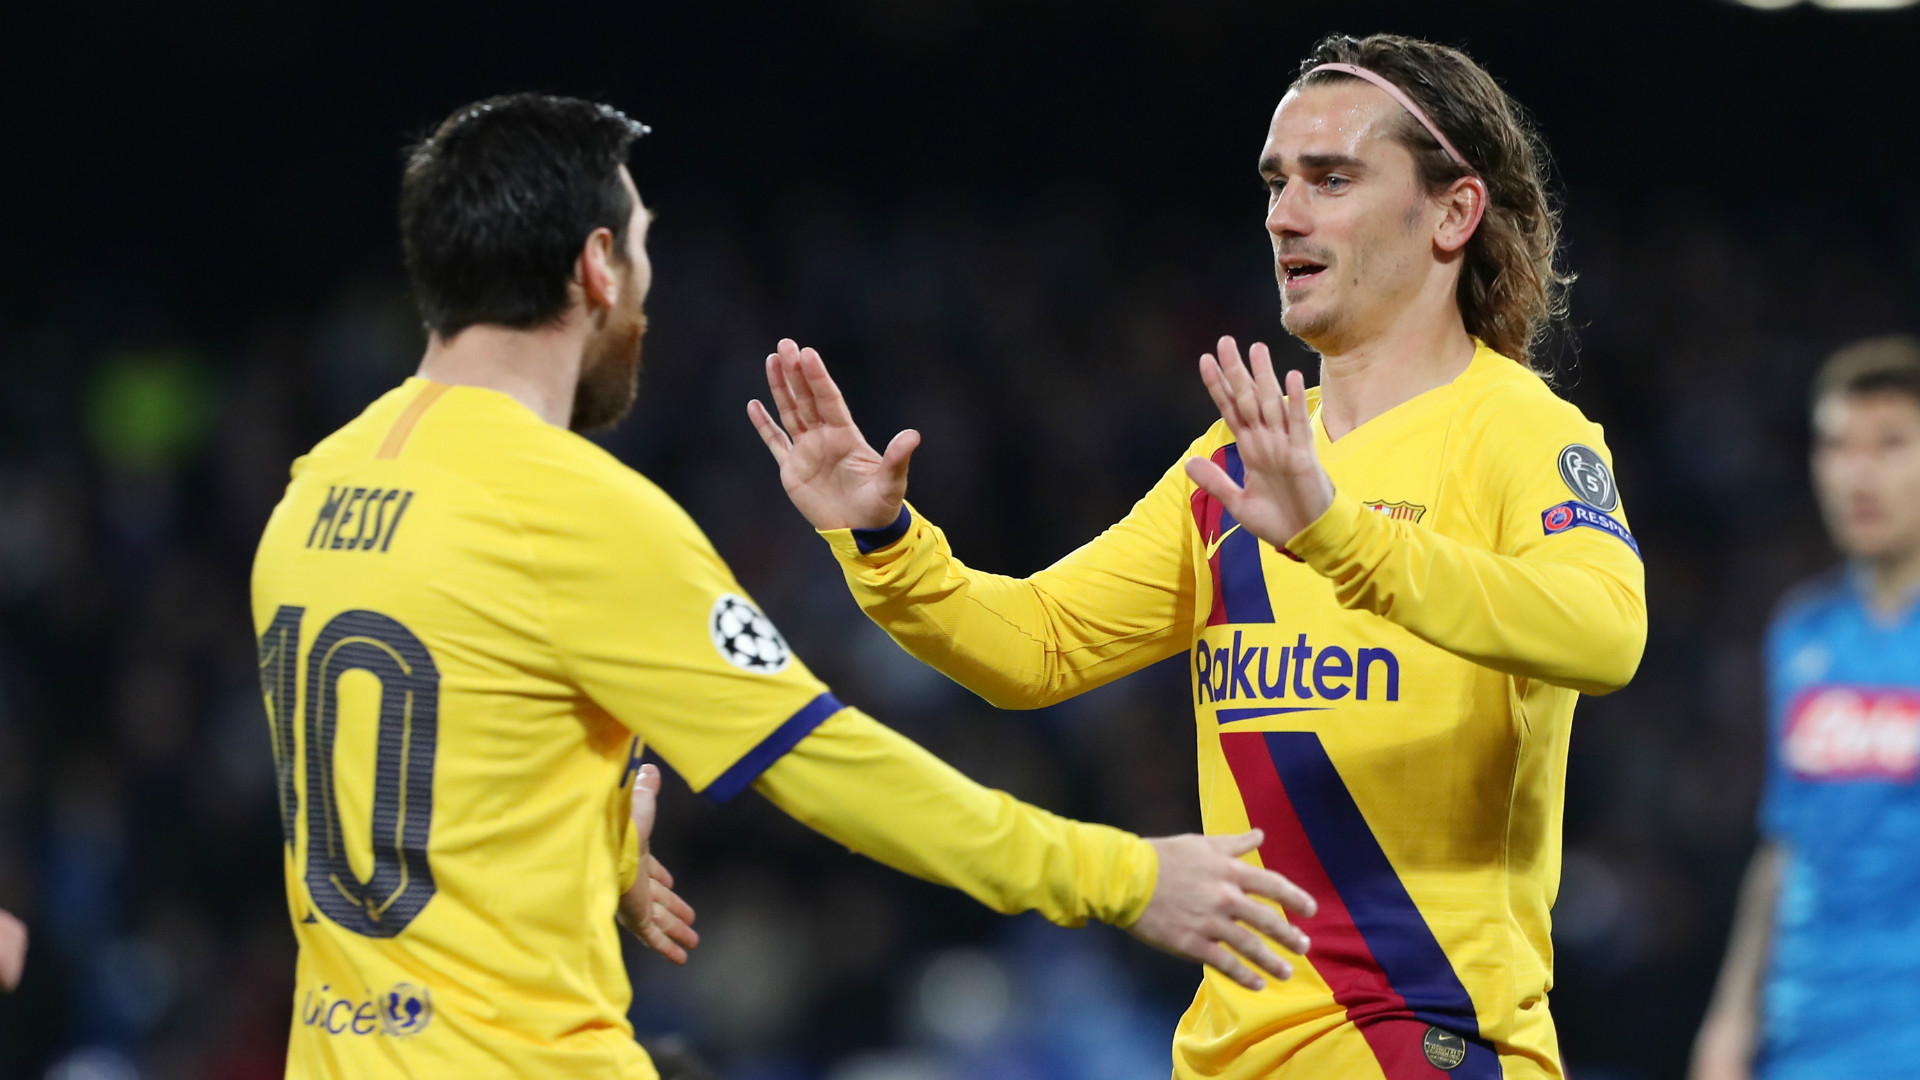 Important for Messi to help Griezmann avoid becoming the 'new Coutinho' - Rivaldo